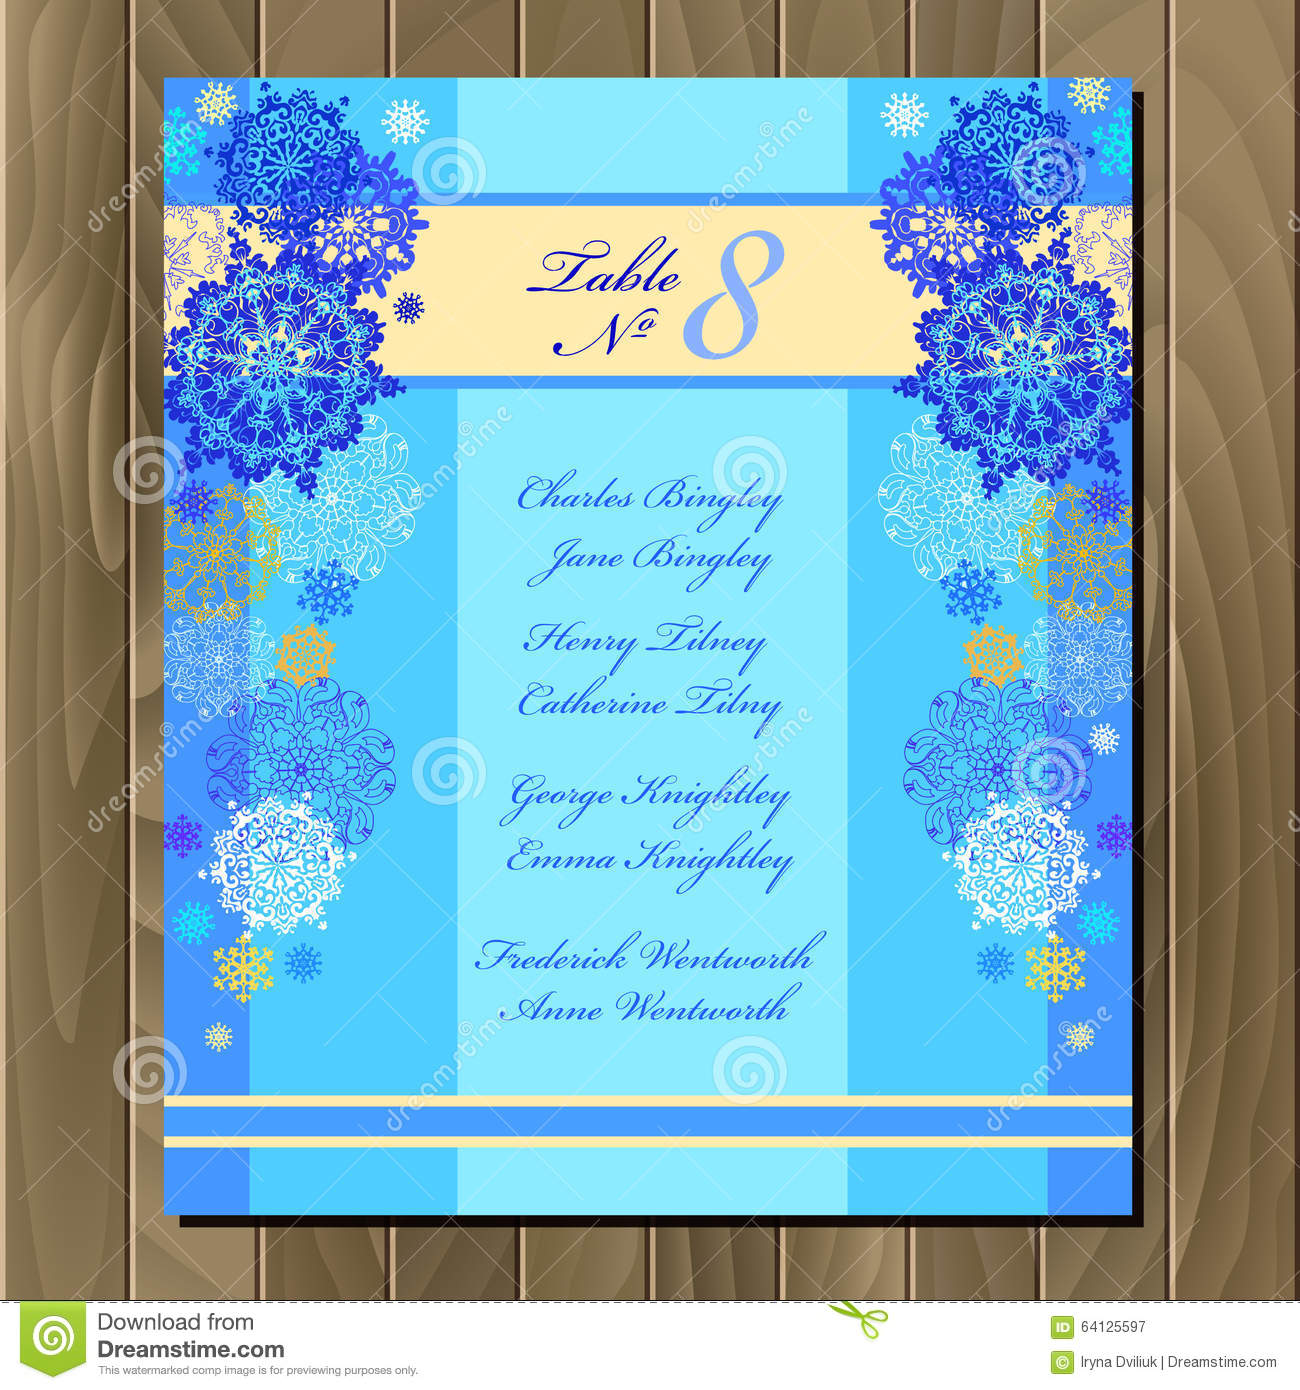 Table Guest List. Vector Background With Winter Snowflakes